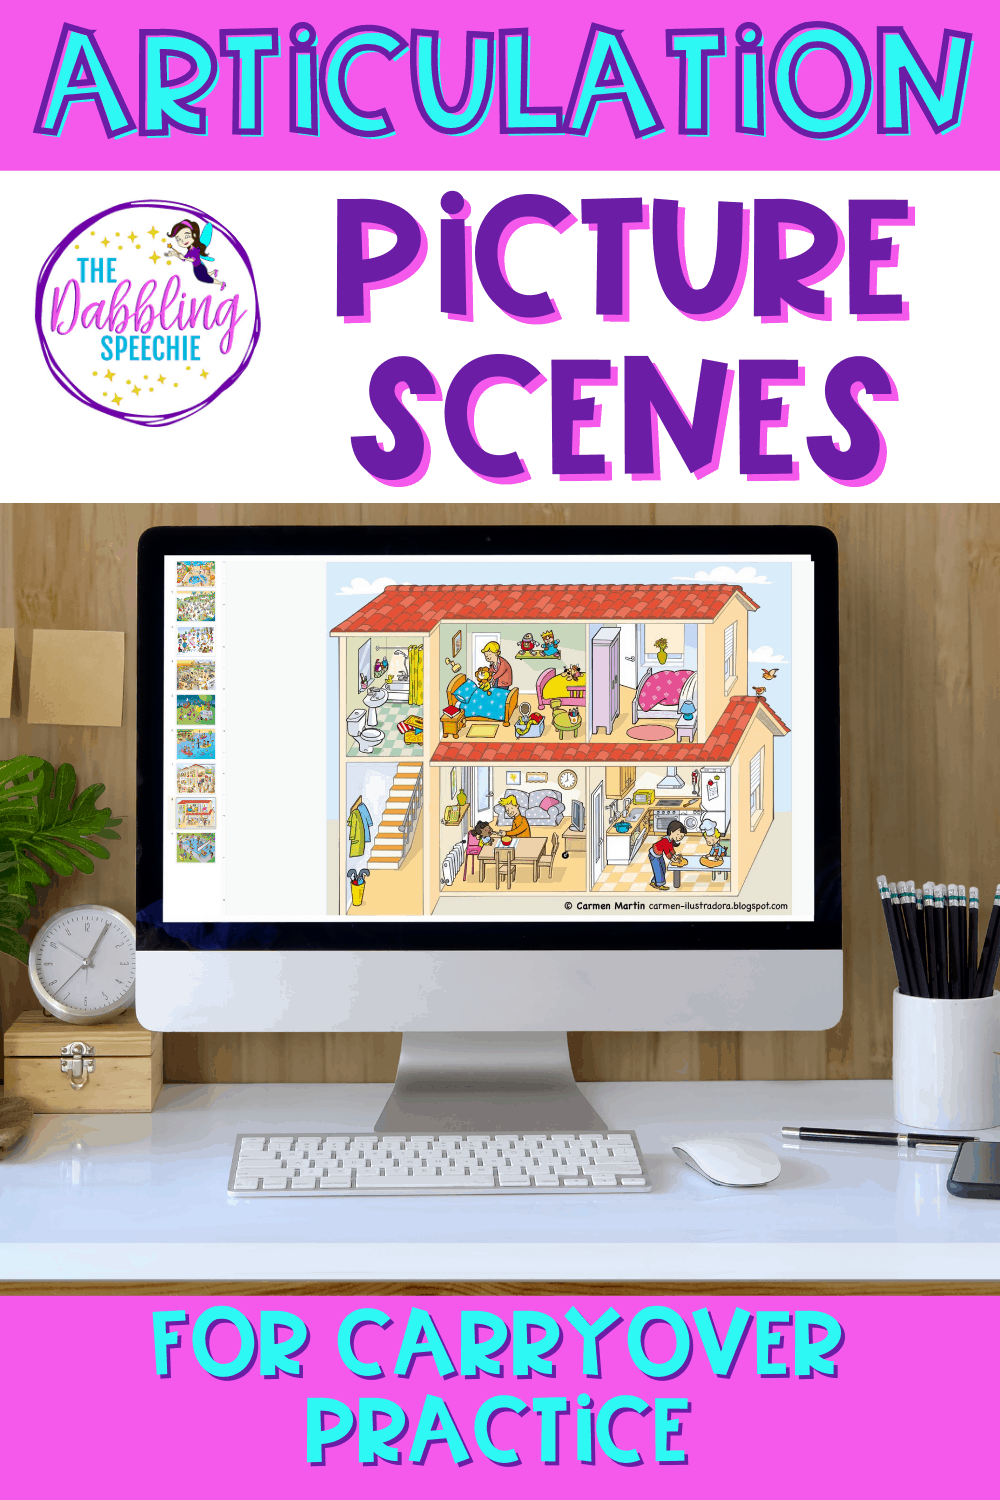 Check out how I found articulation picture scenes to work on articulation carryover. You can also use these articulation picture scenes to work on fluency and language goals.